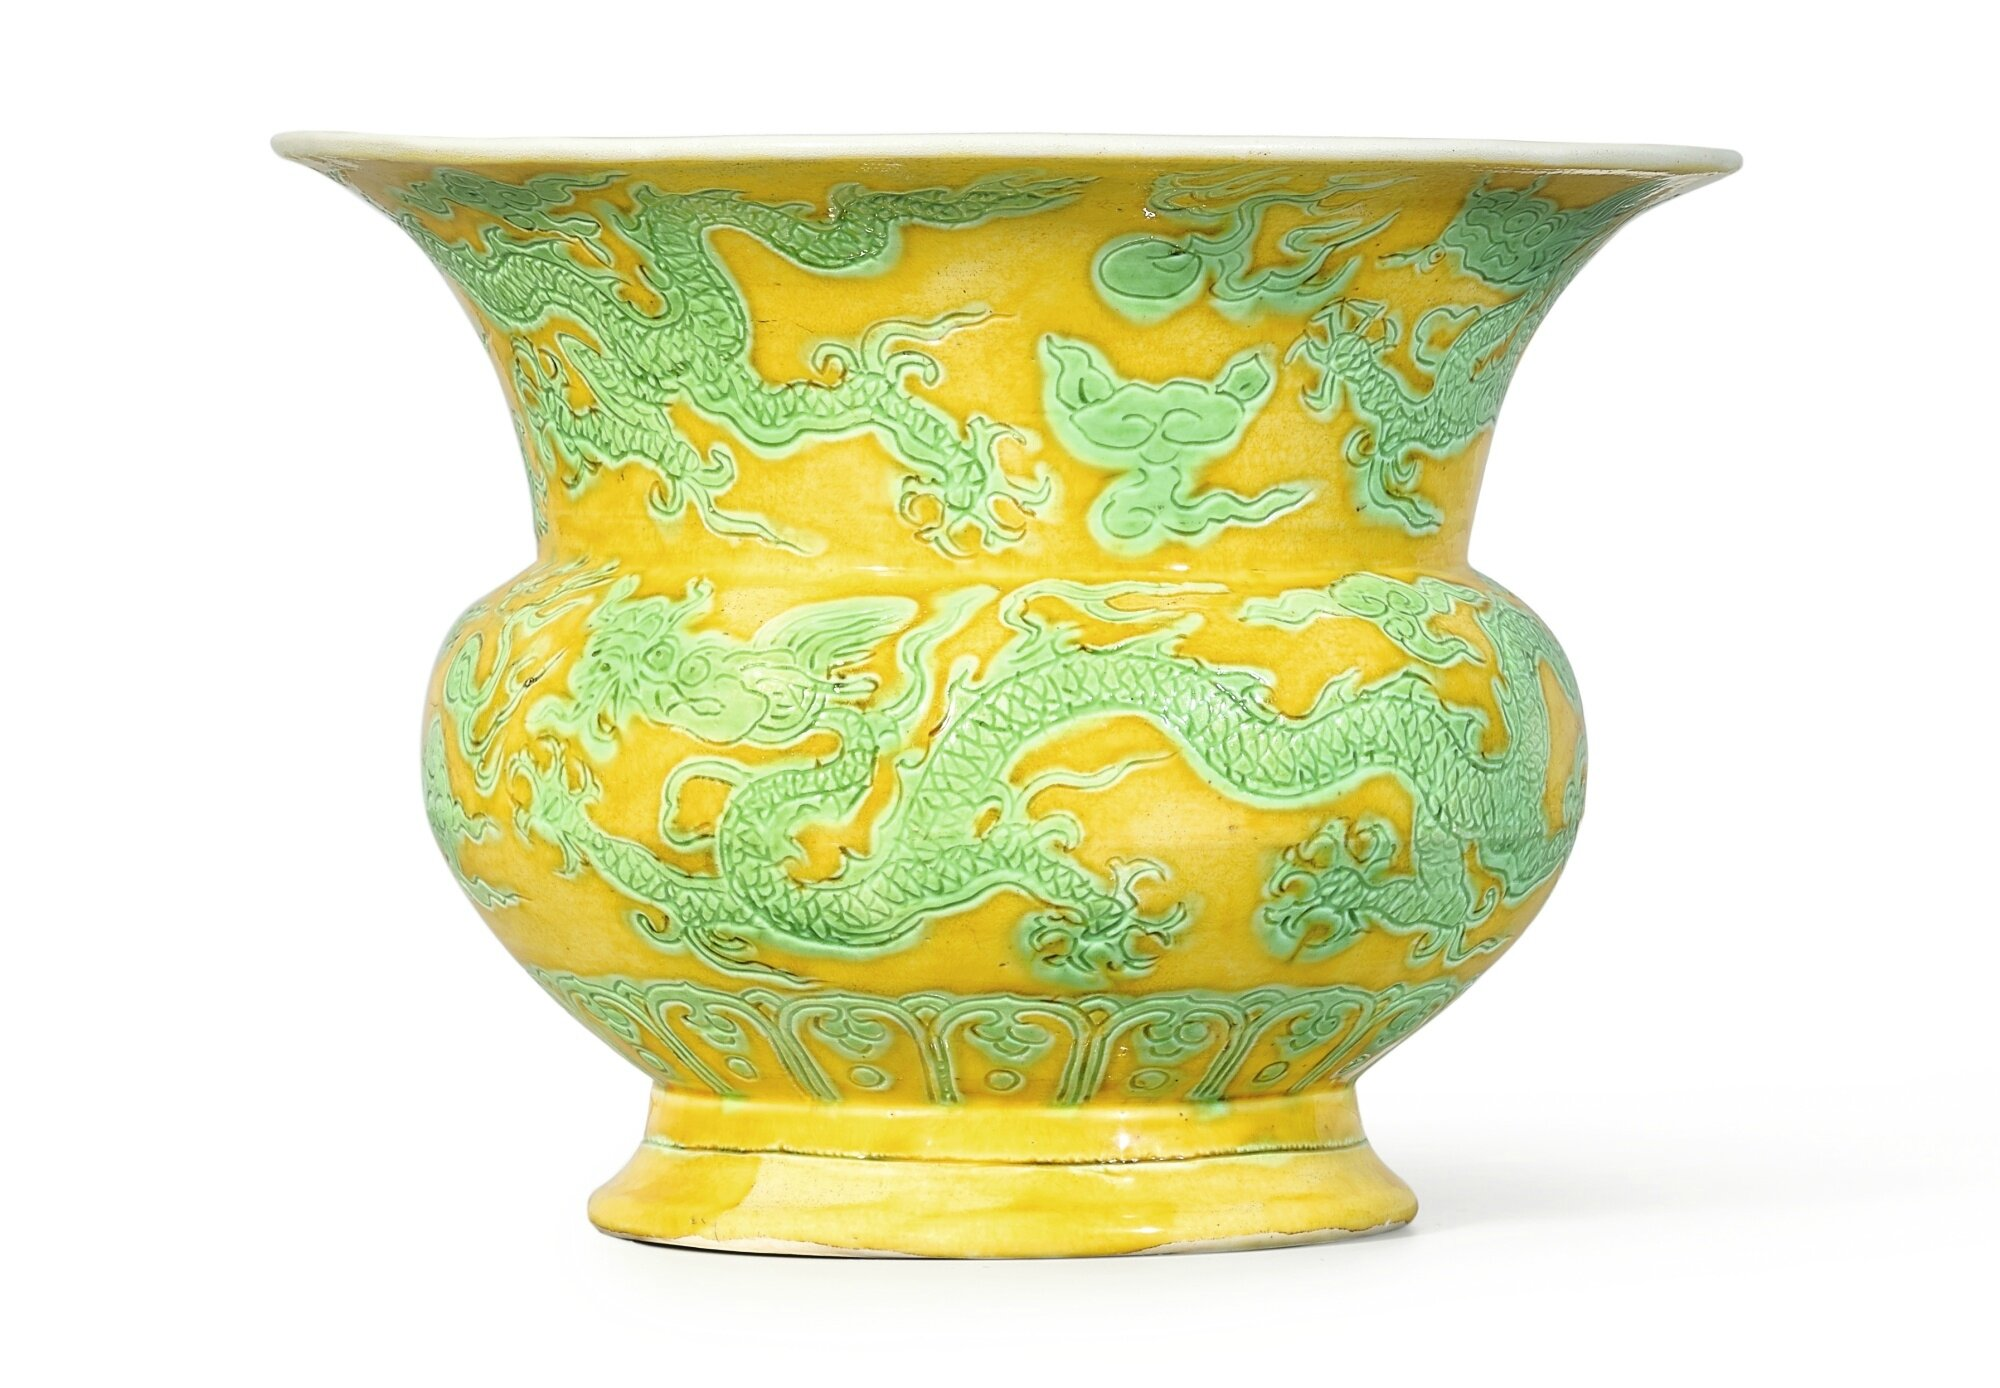 A rare yellow and green 'Dragon' zhadou, Mark and period of Zhengde (1506-1521)